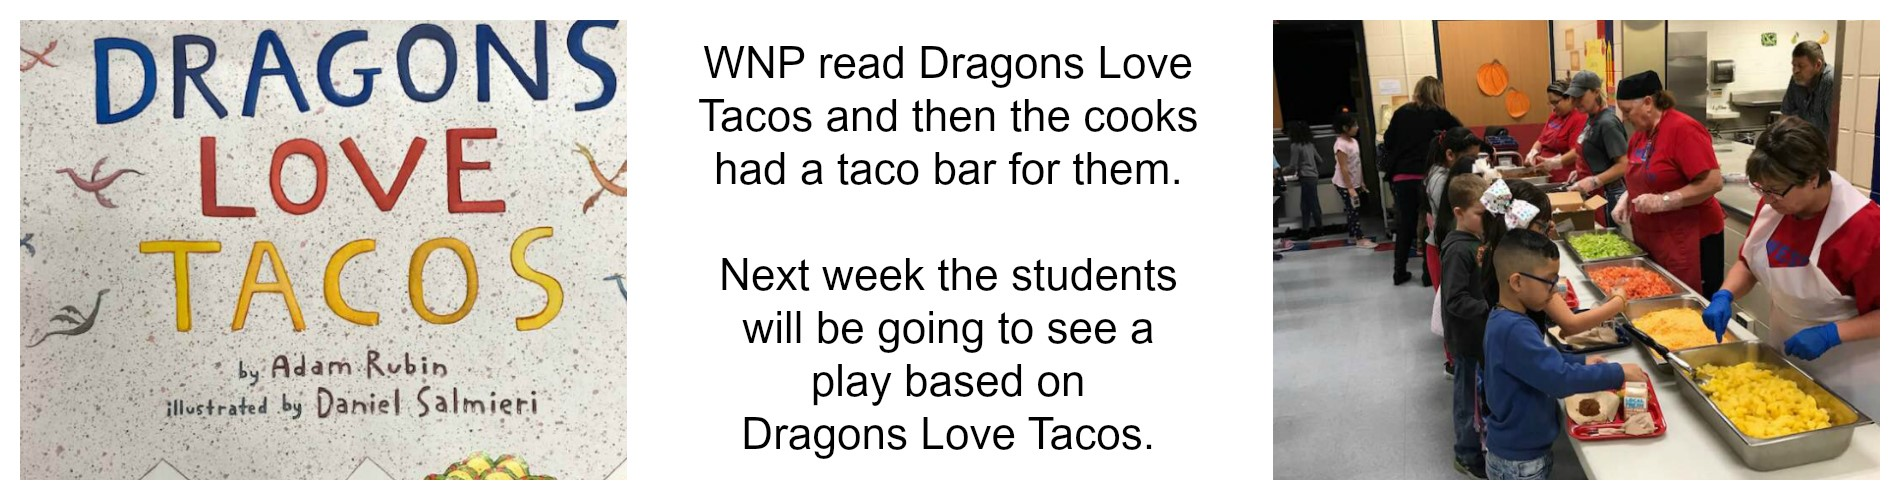 Students enjoy the book 'Dragons Love Tacos' and the cooks serving tacos.